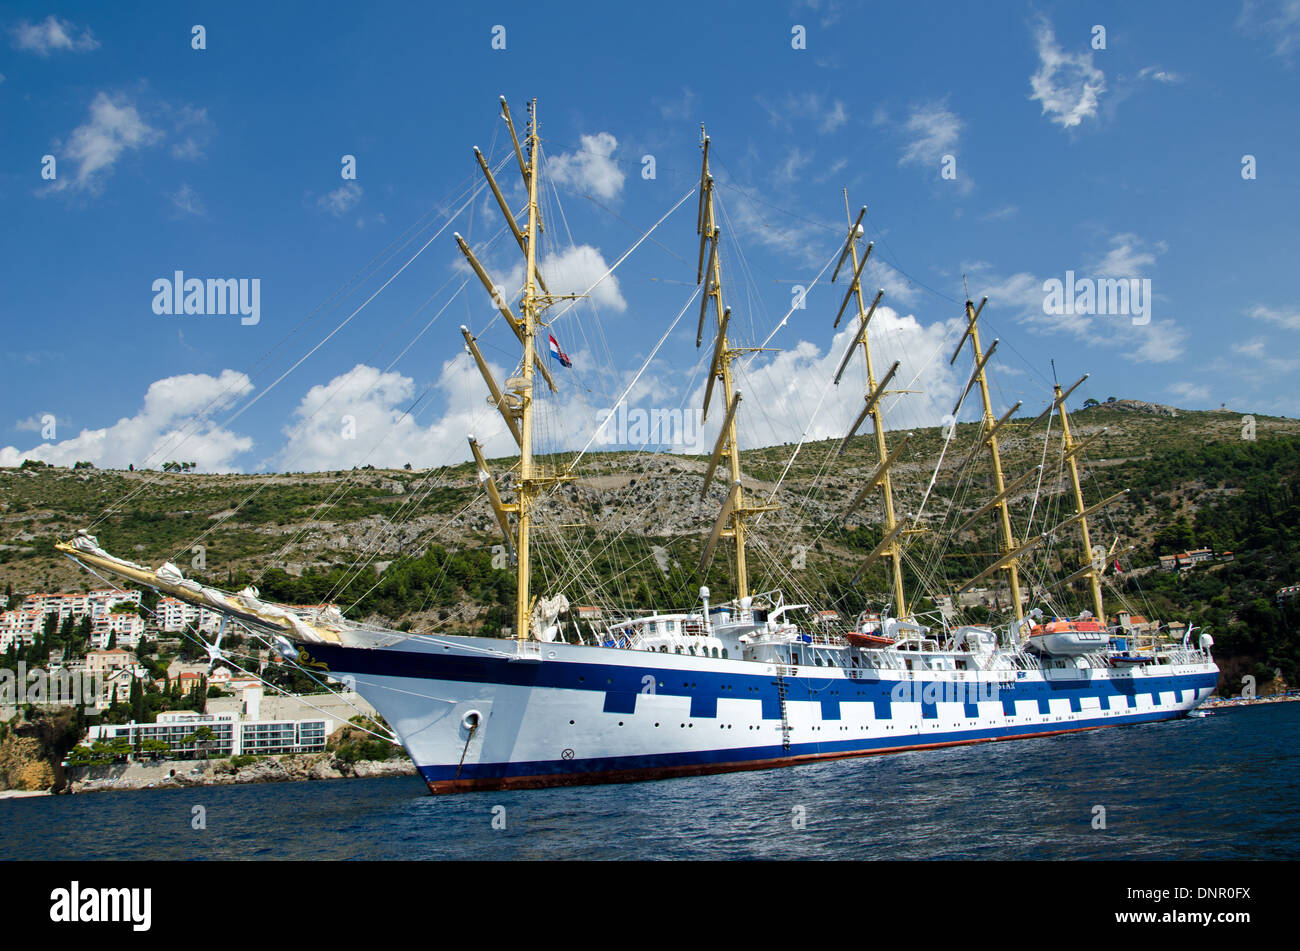 Sailors in the port - Stock Image